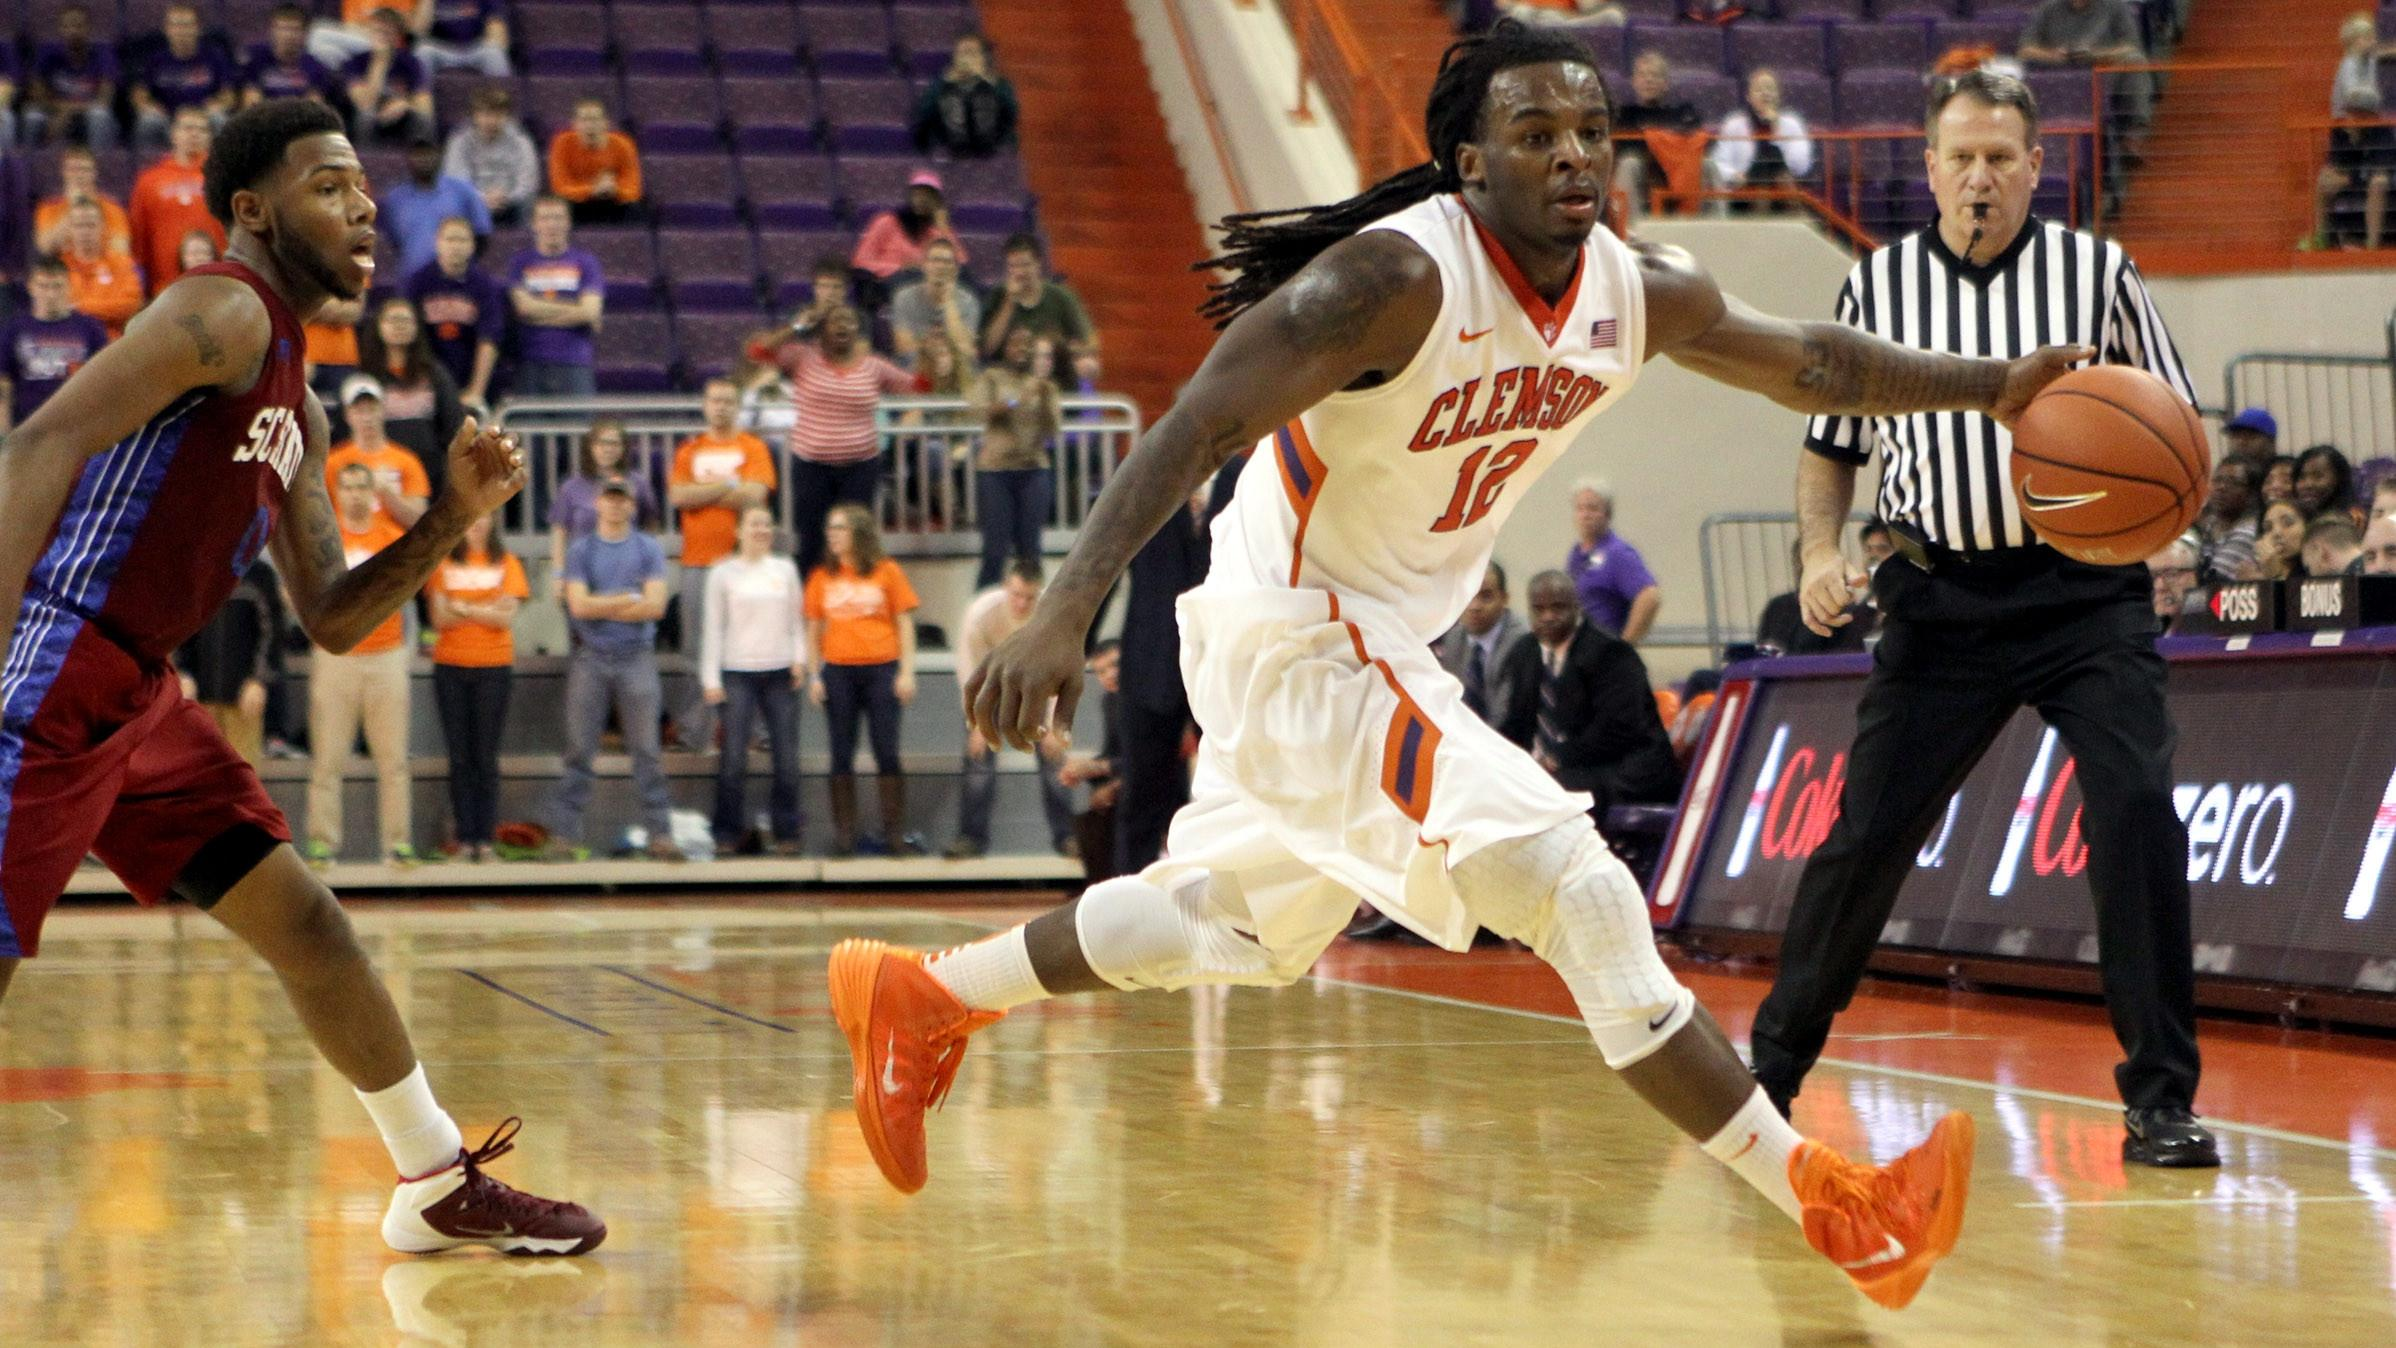 Tigers Travel to Arkansas for First Road Game Saturday